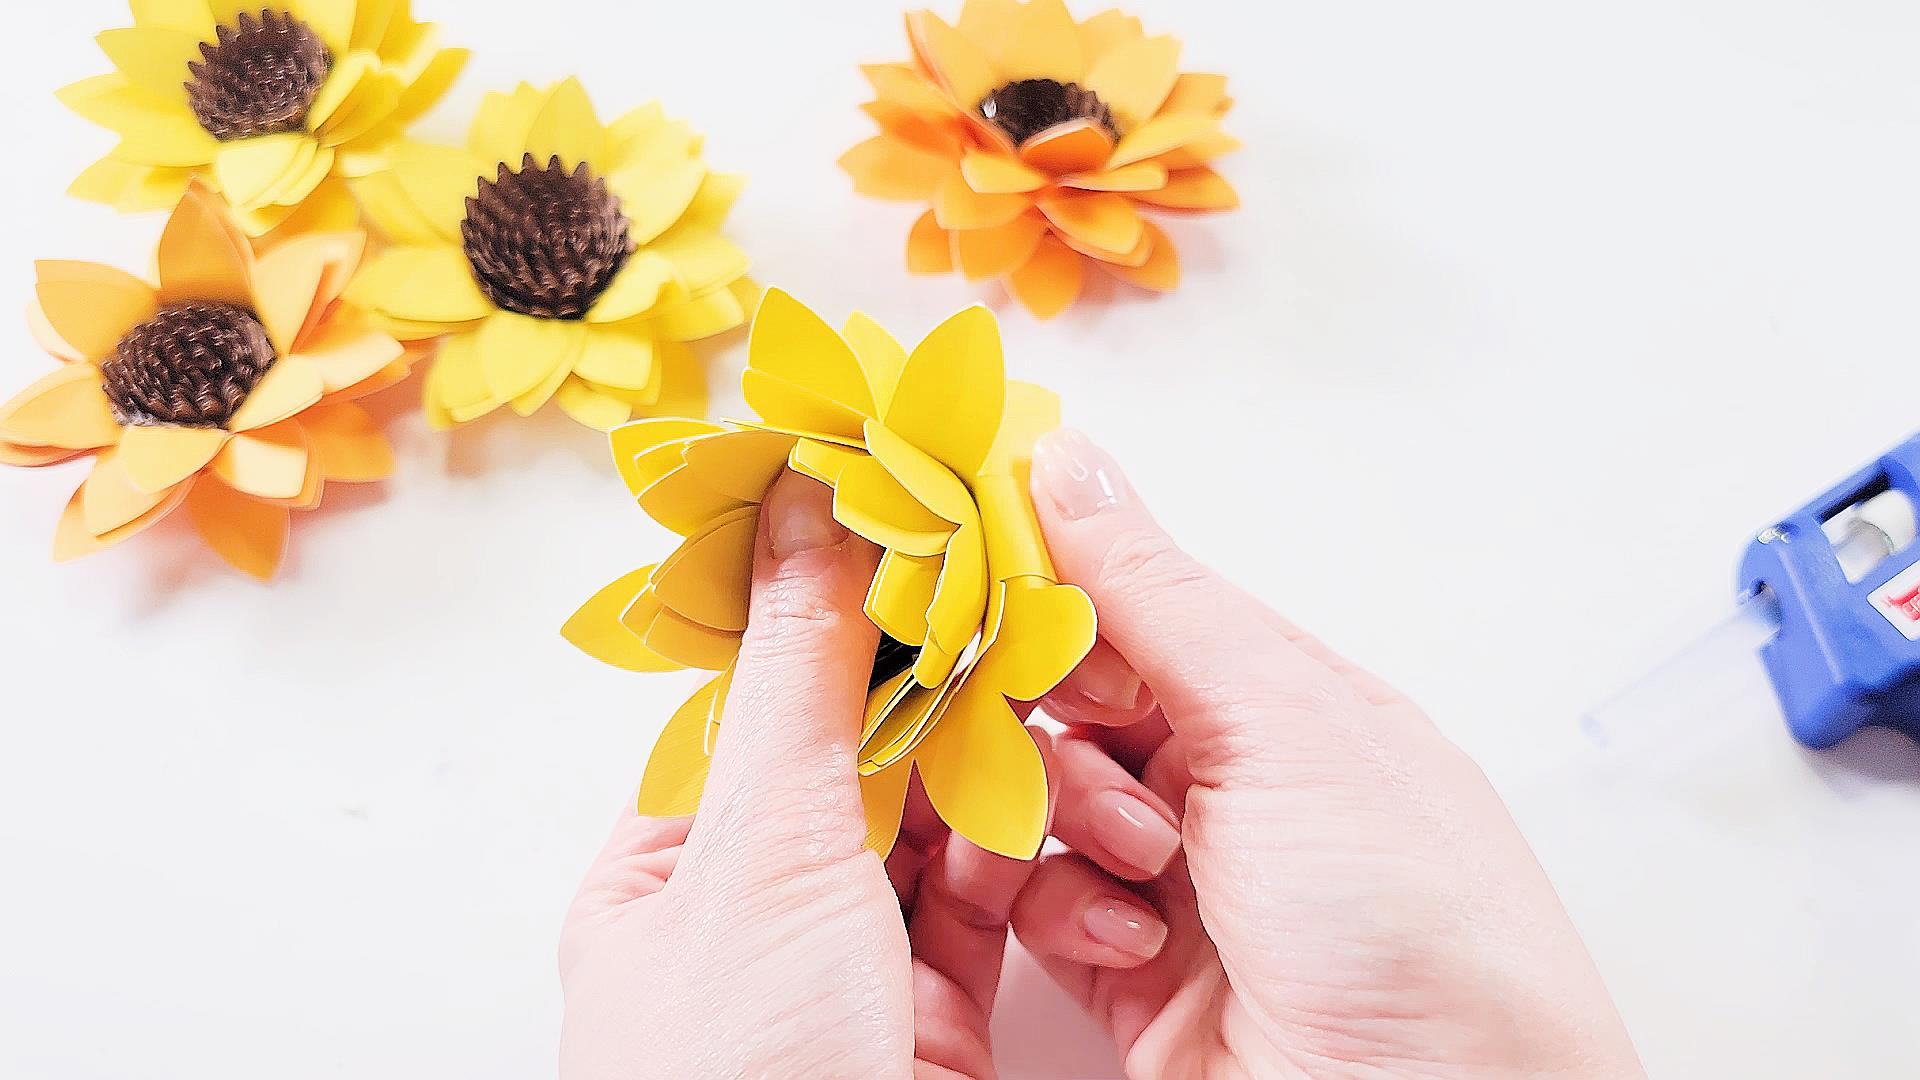 folding petals back on a nearly complete sunflower paper flower